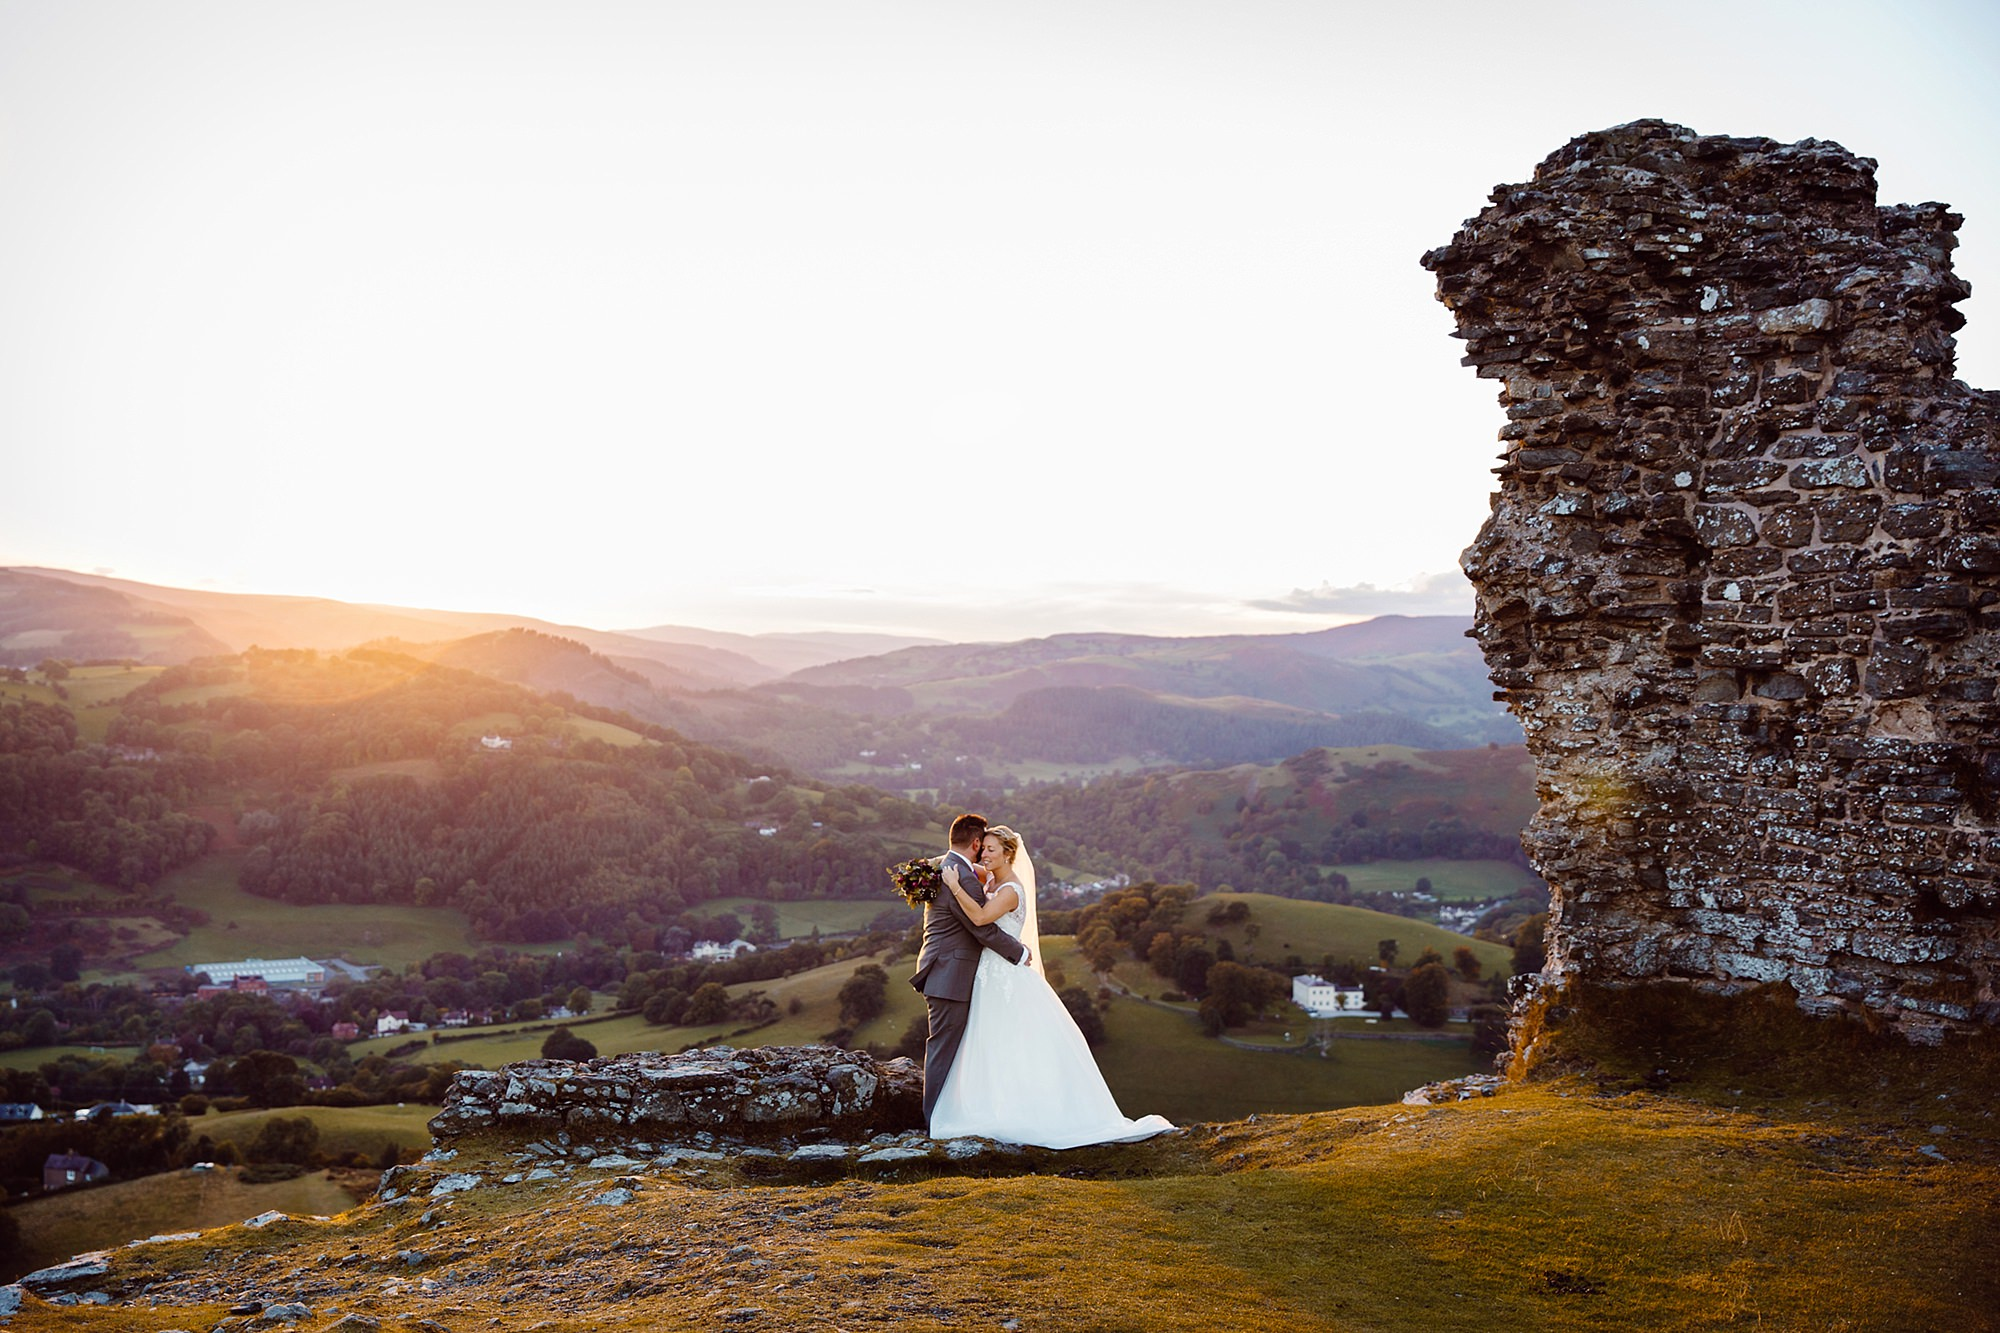 Castell dinas bran wedding photography portrait of bride and groom together at castle ruins at sunset